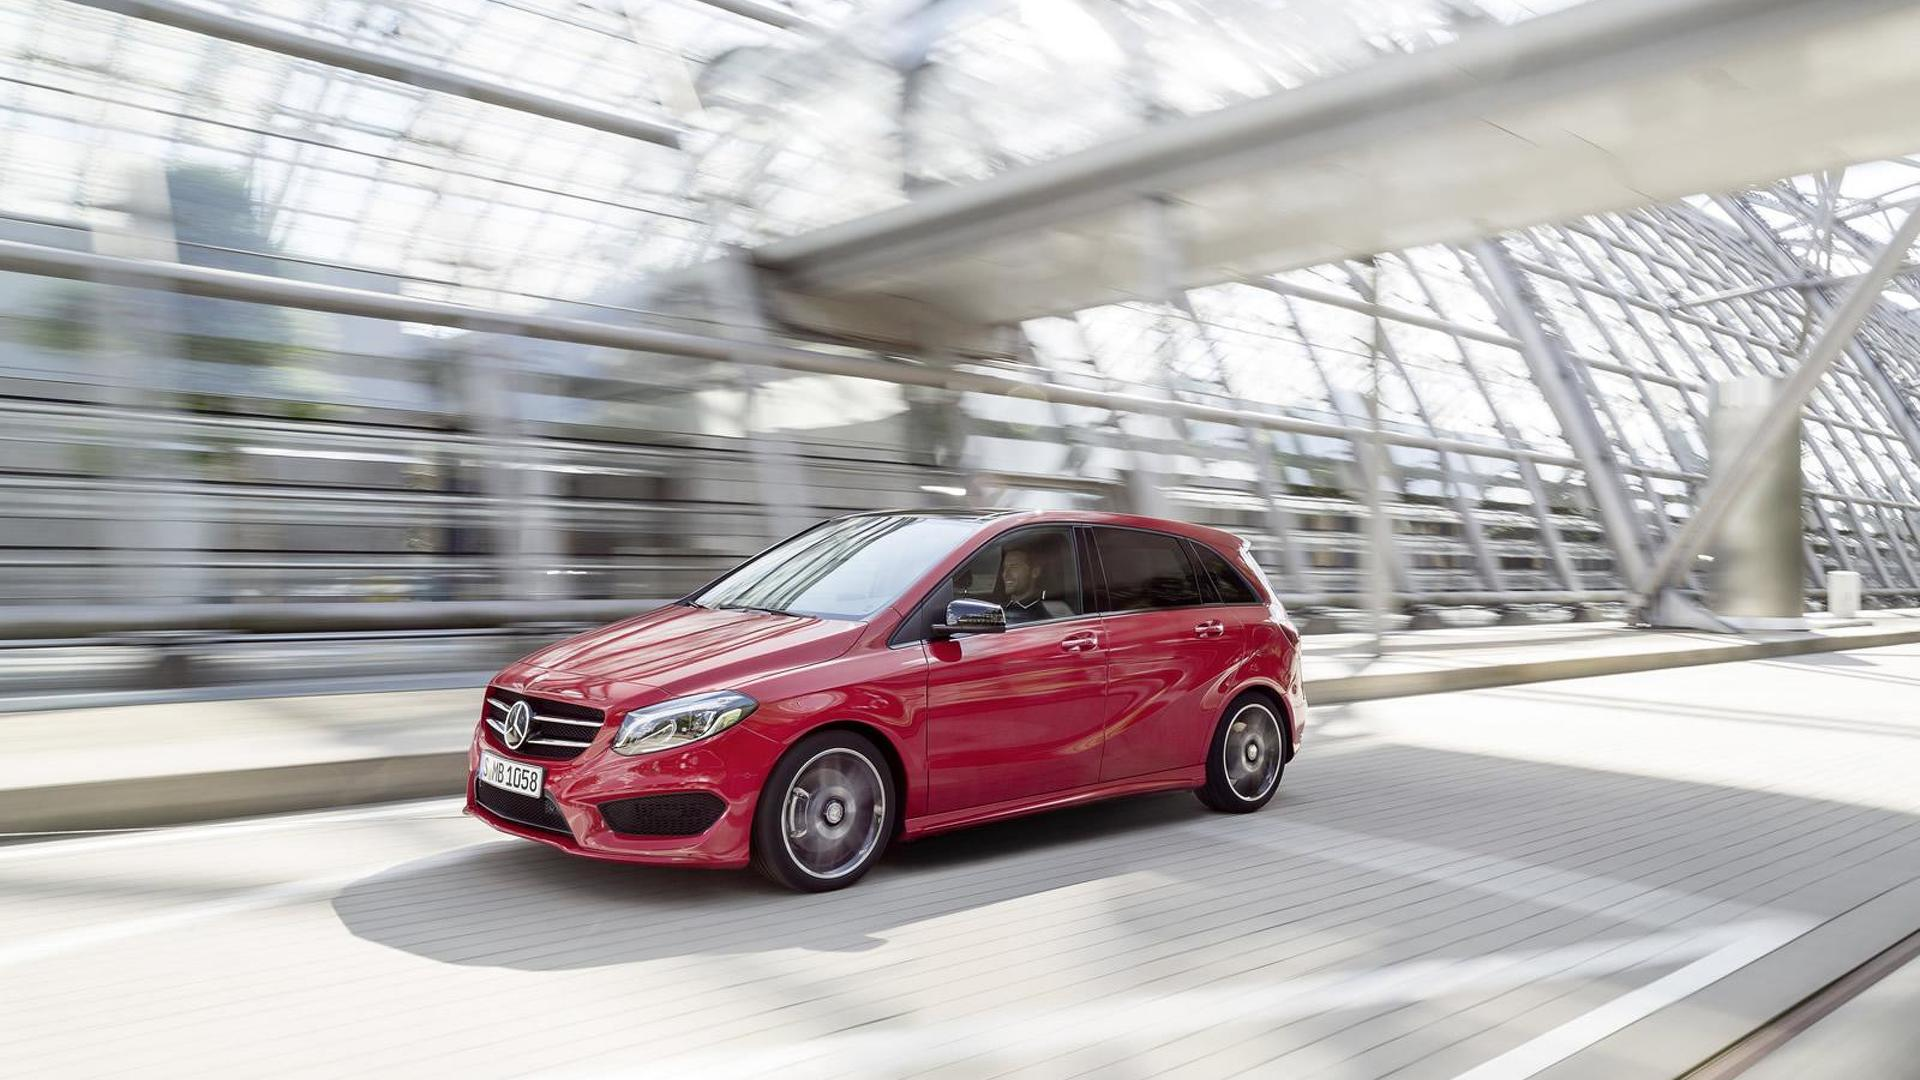 Mercedes-Benz B-Class facelift unveiled with subtle updates